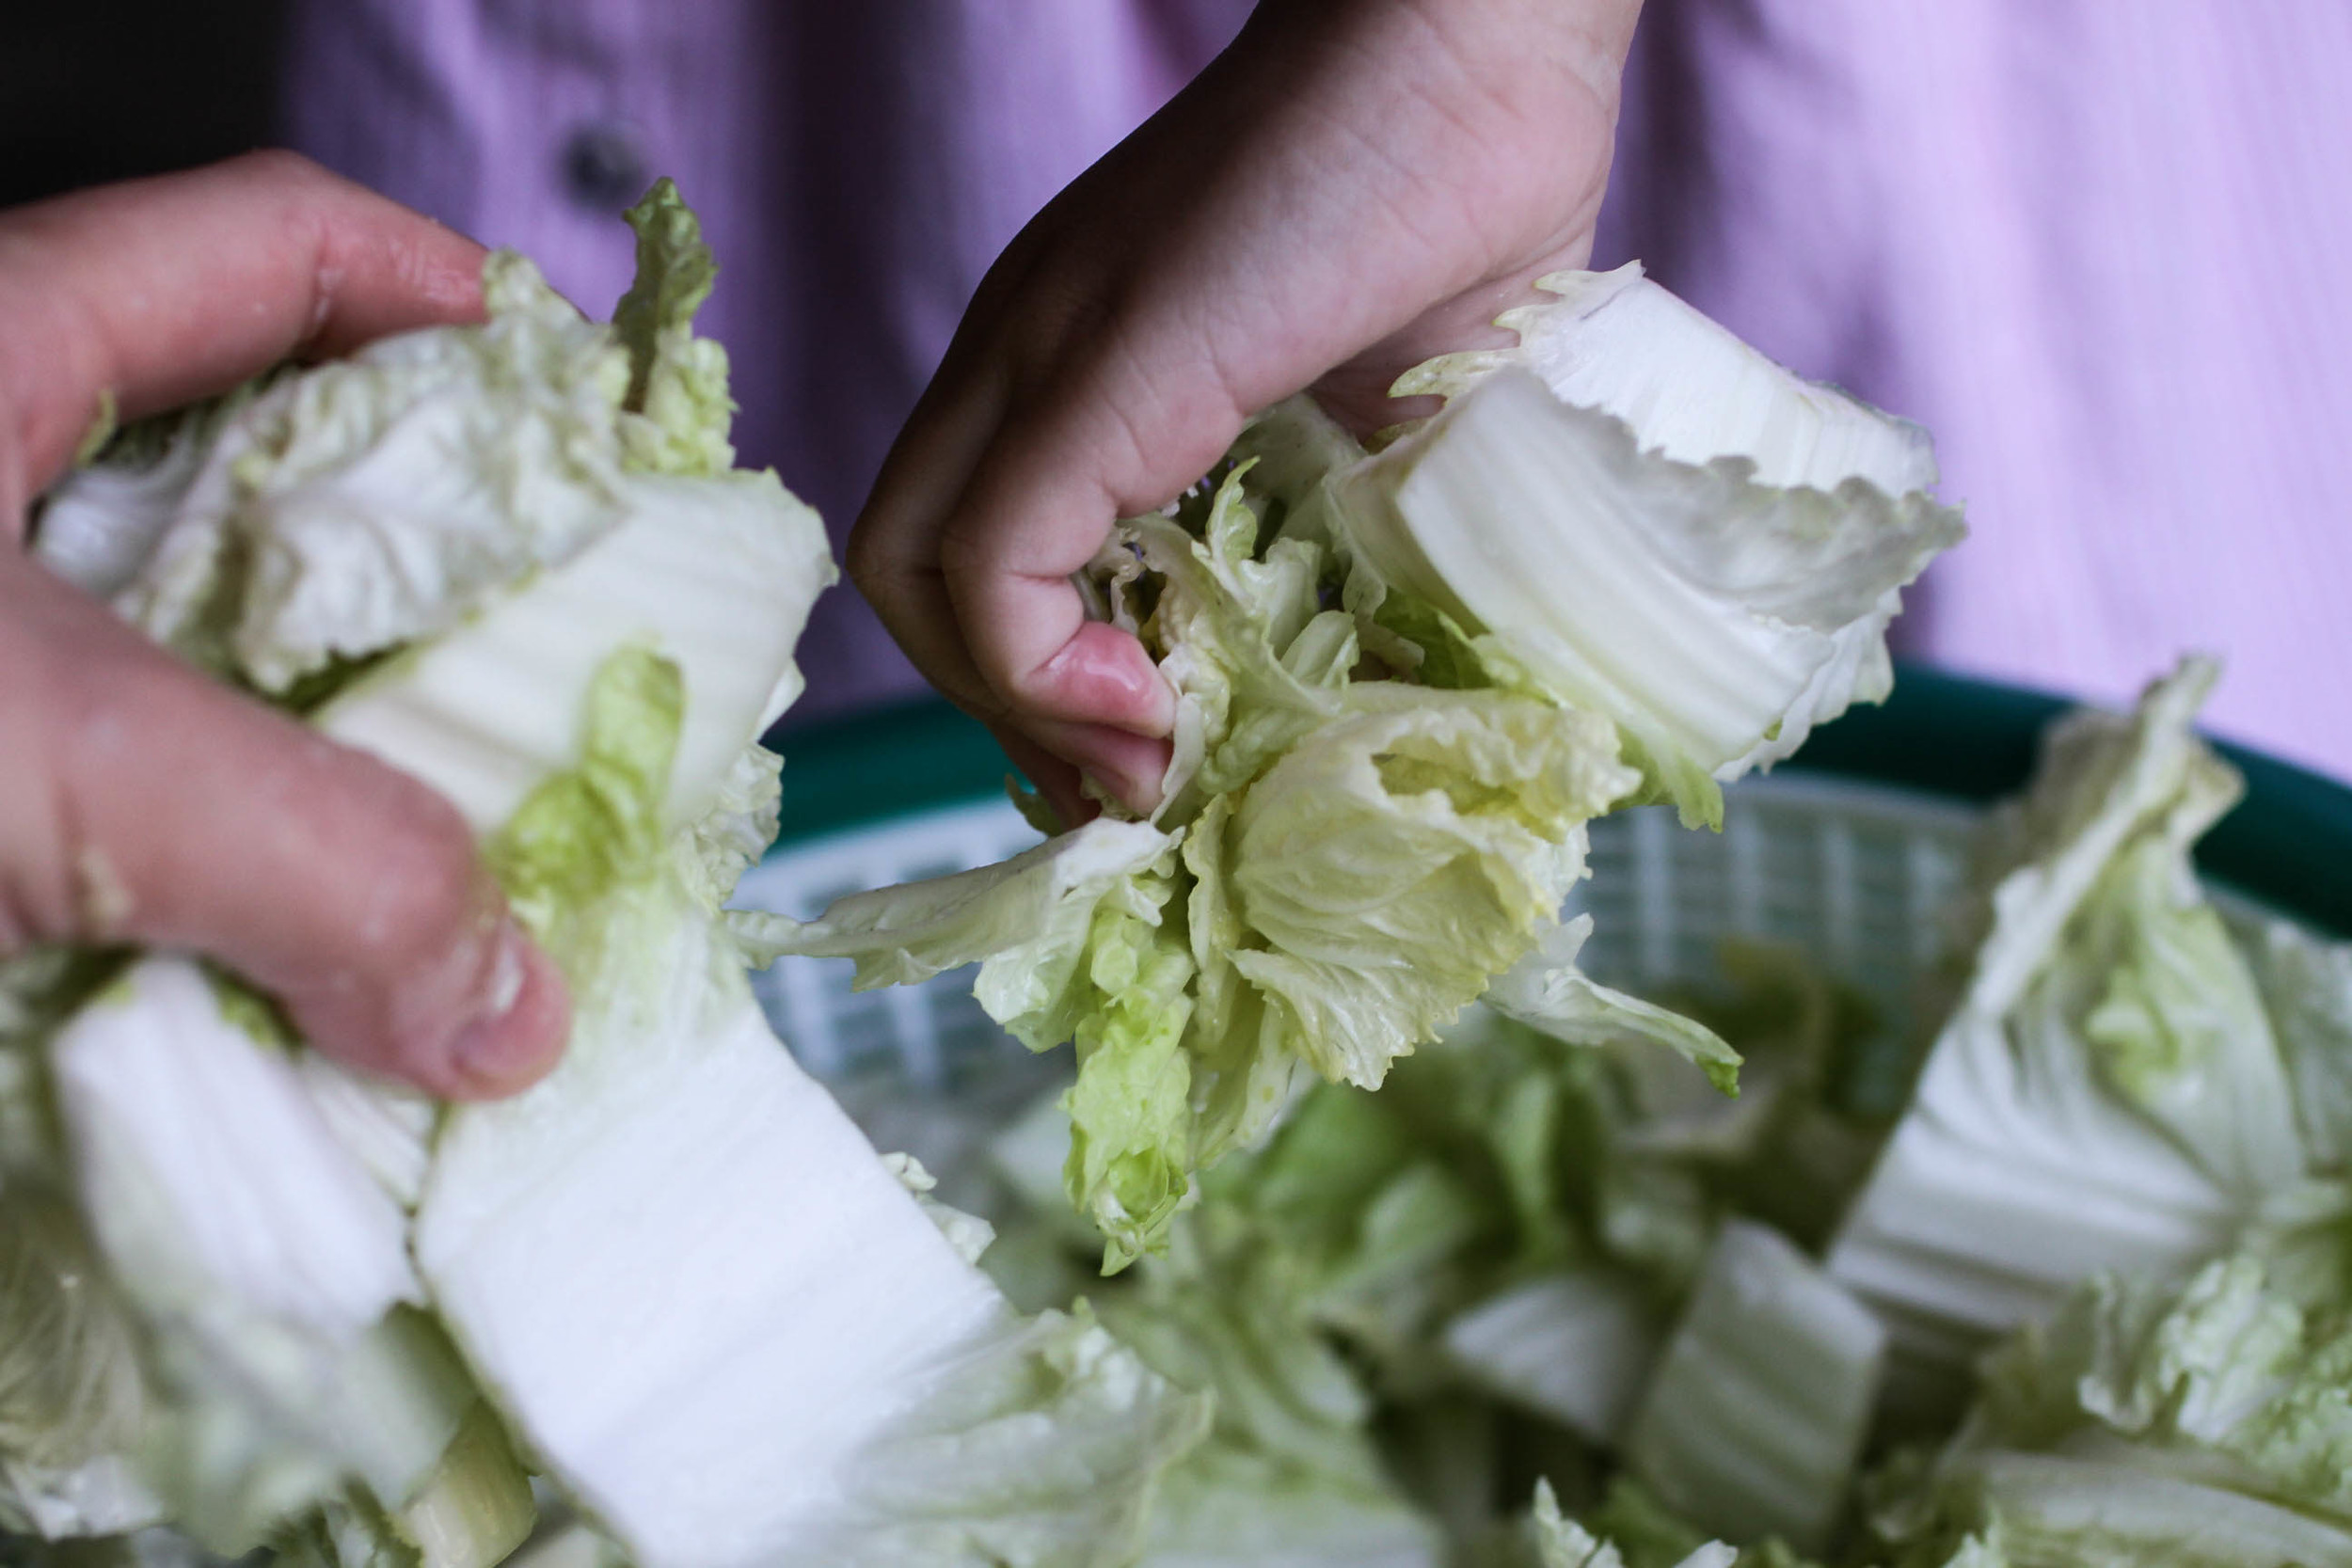 Allyson mixes the napa cabbage with salt.